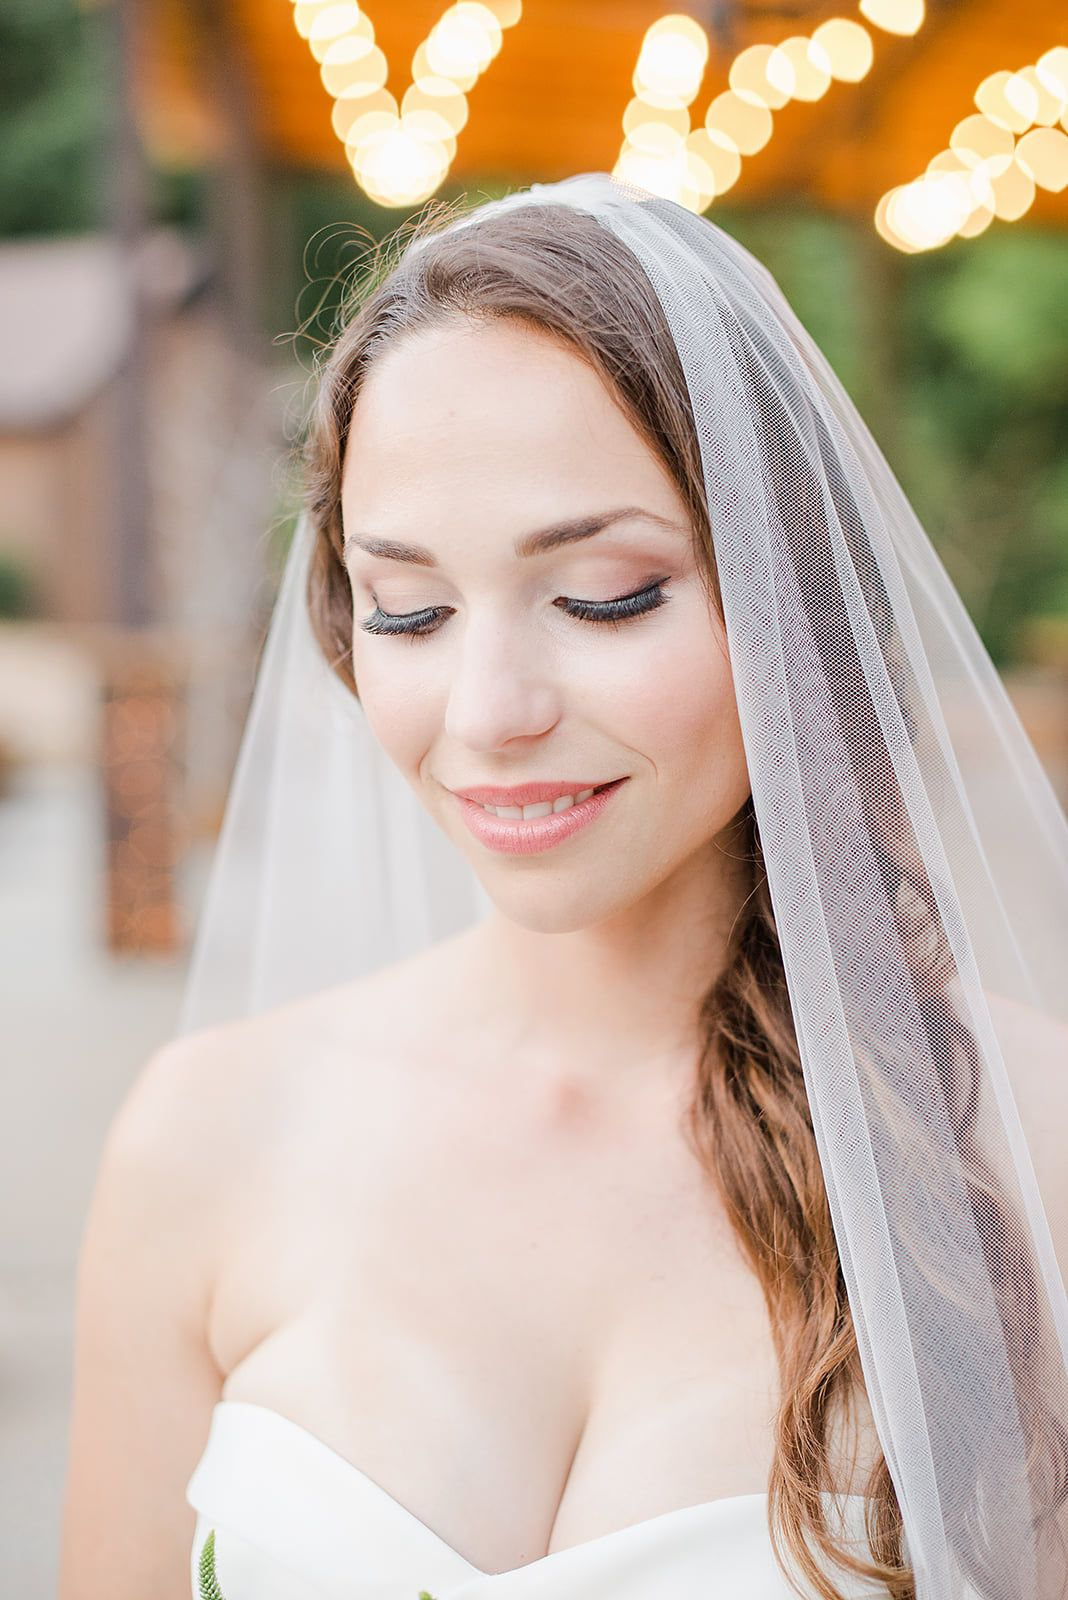 classic wedding hair and make up thanks to wedded kiss in